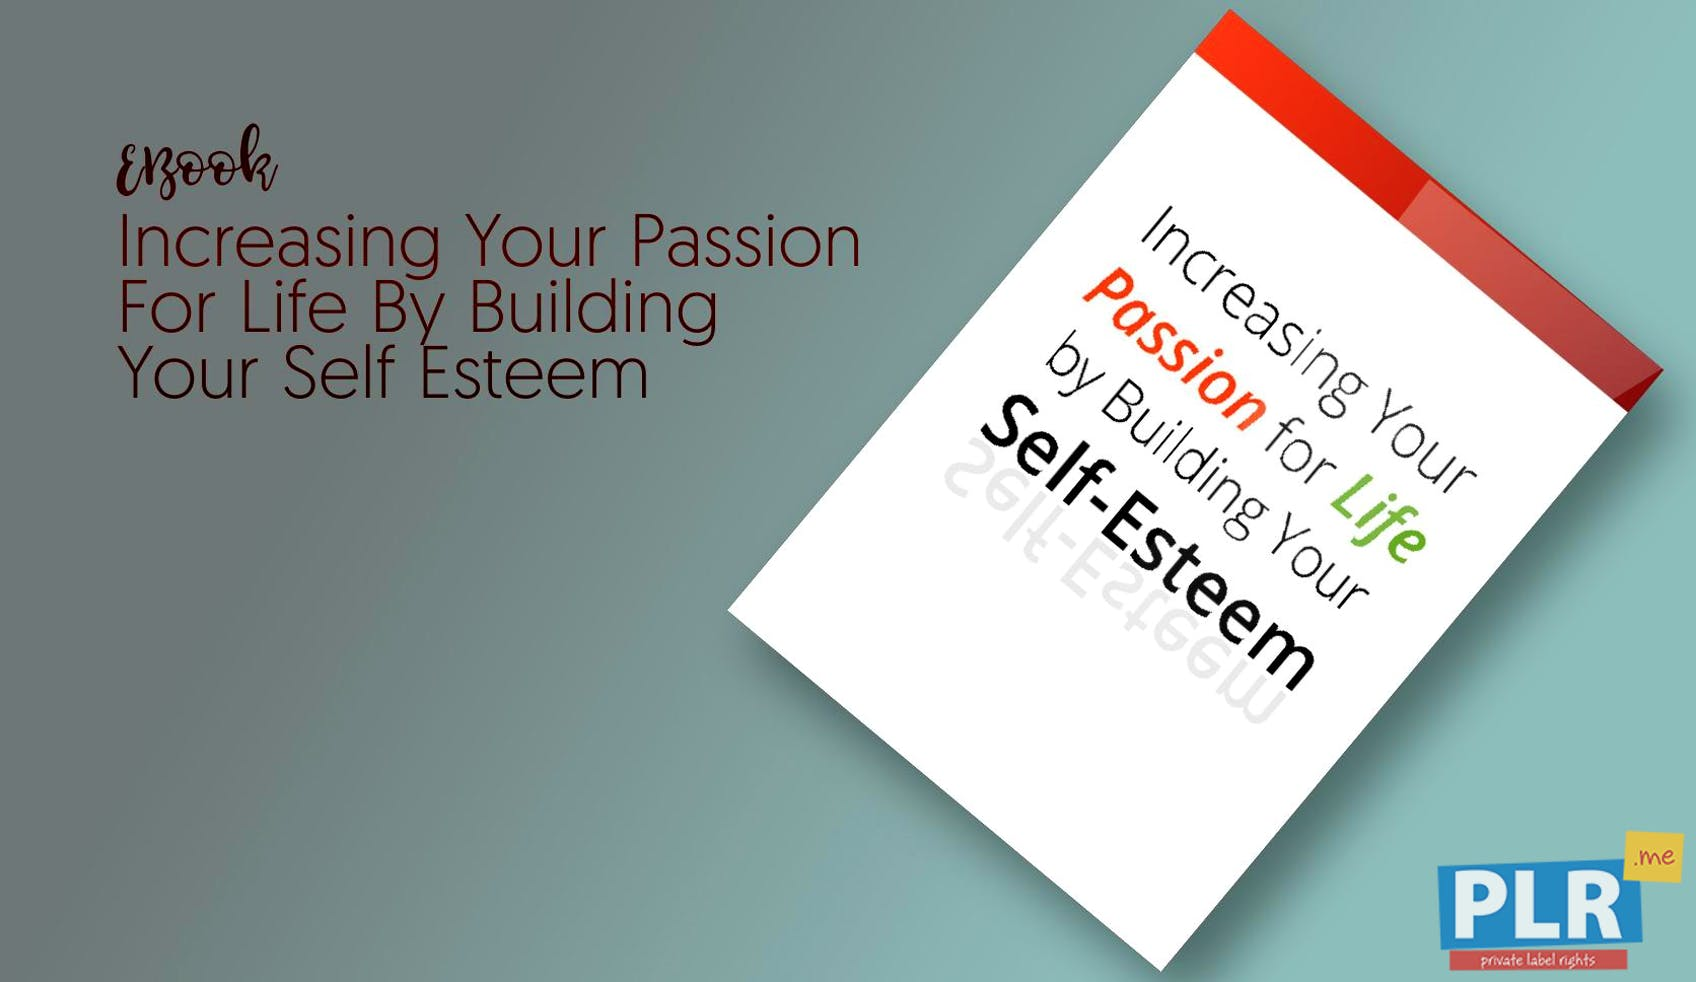 Increasing Your Passion For Life By Building Your Self Esteem